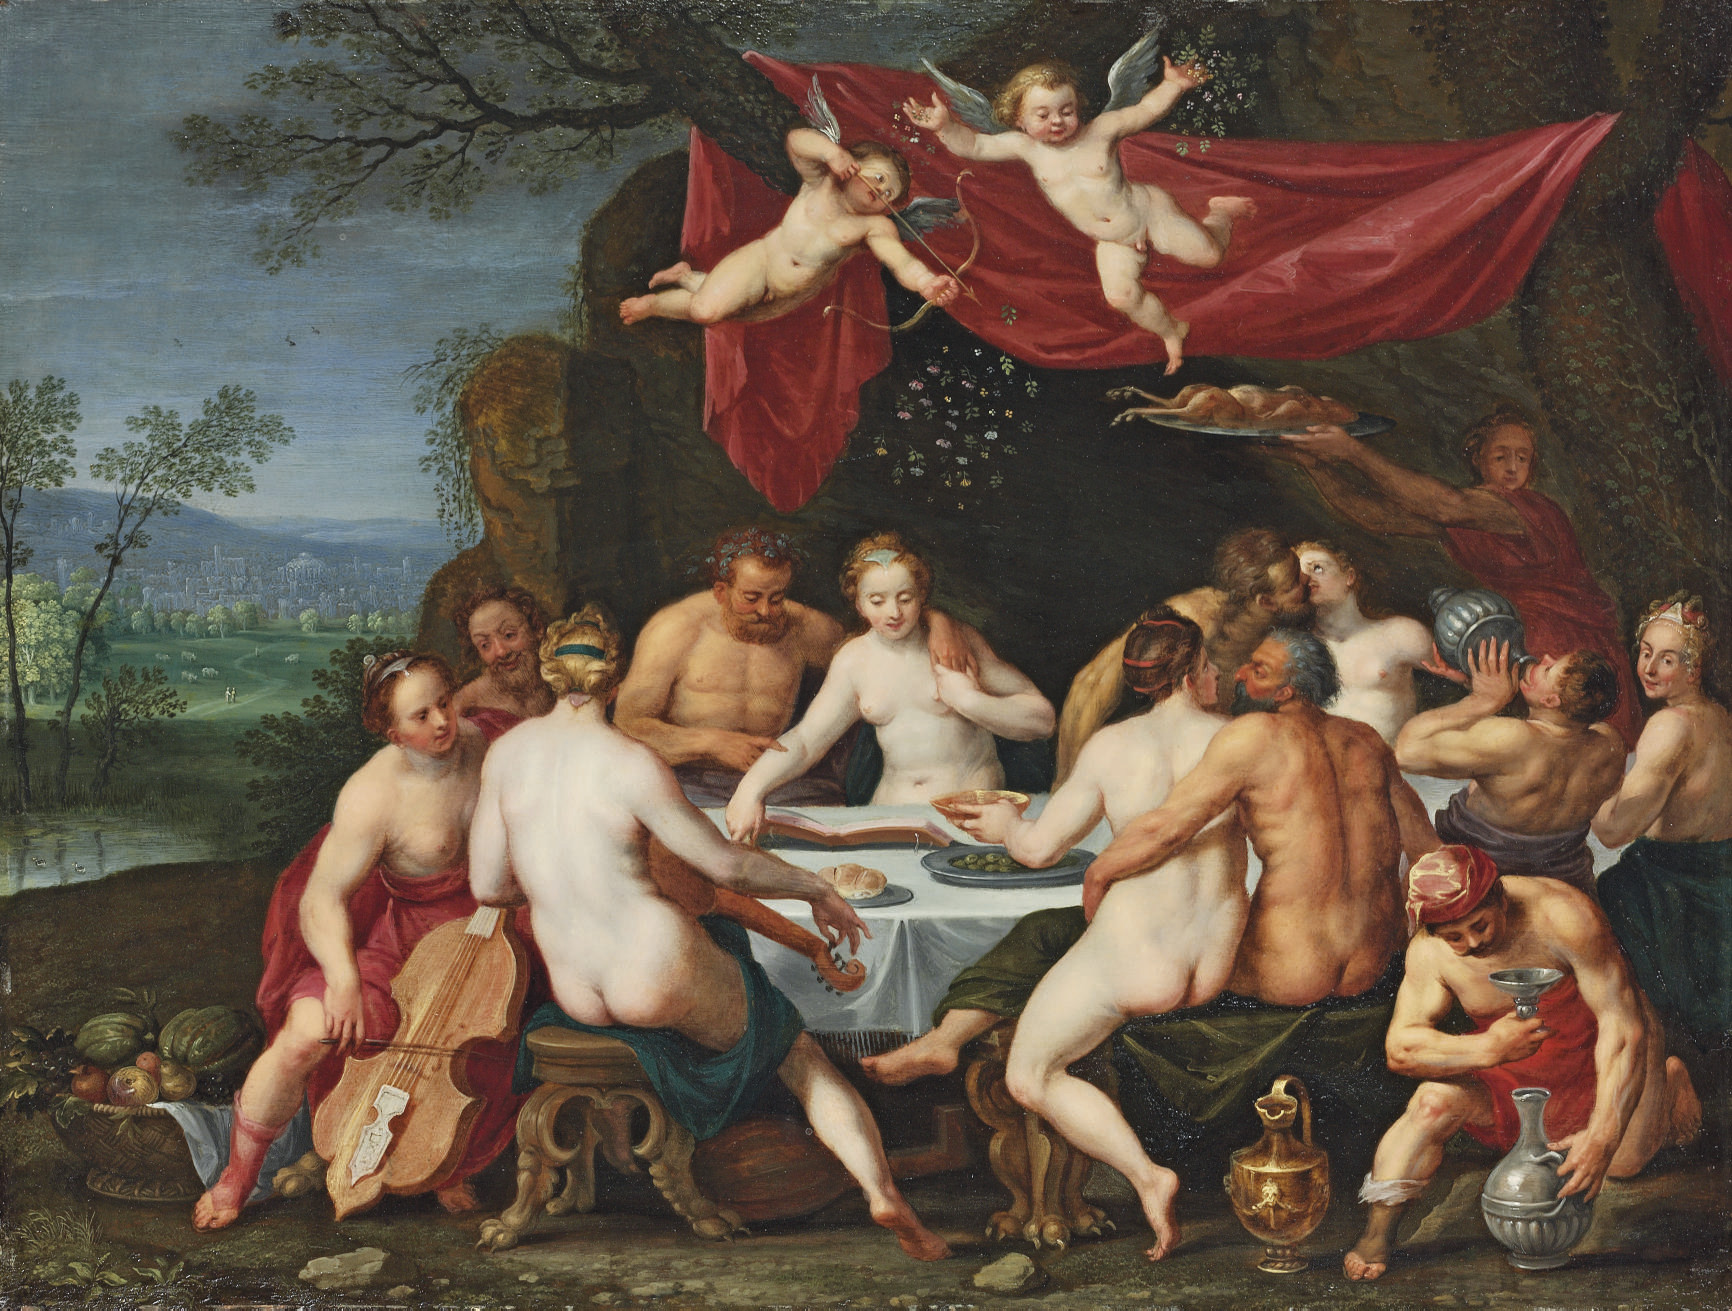 The wedding feast of Bacchus and Ariadne